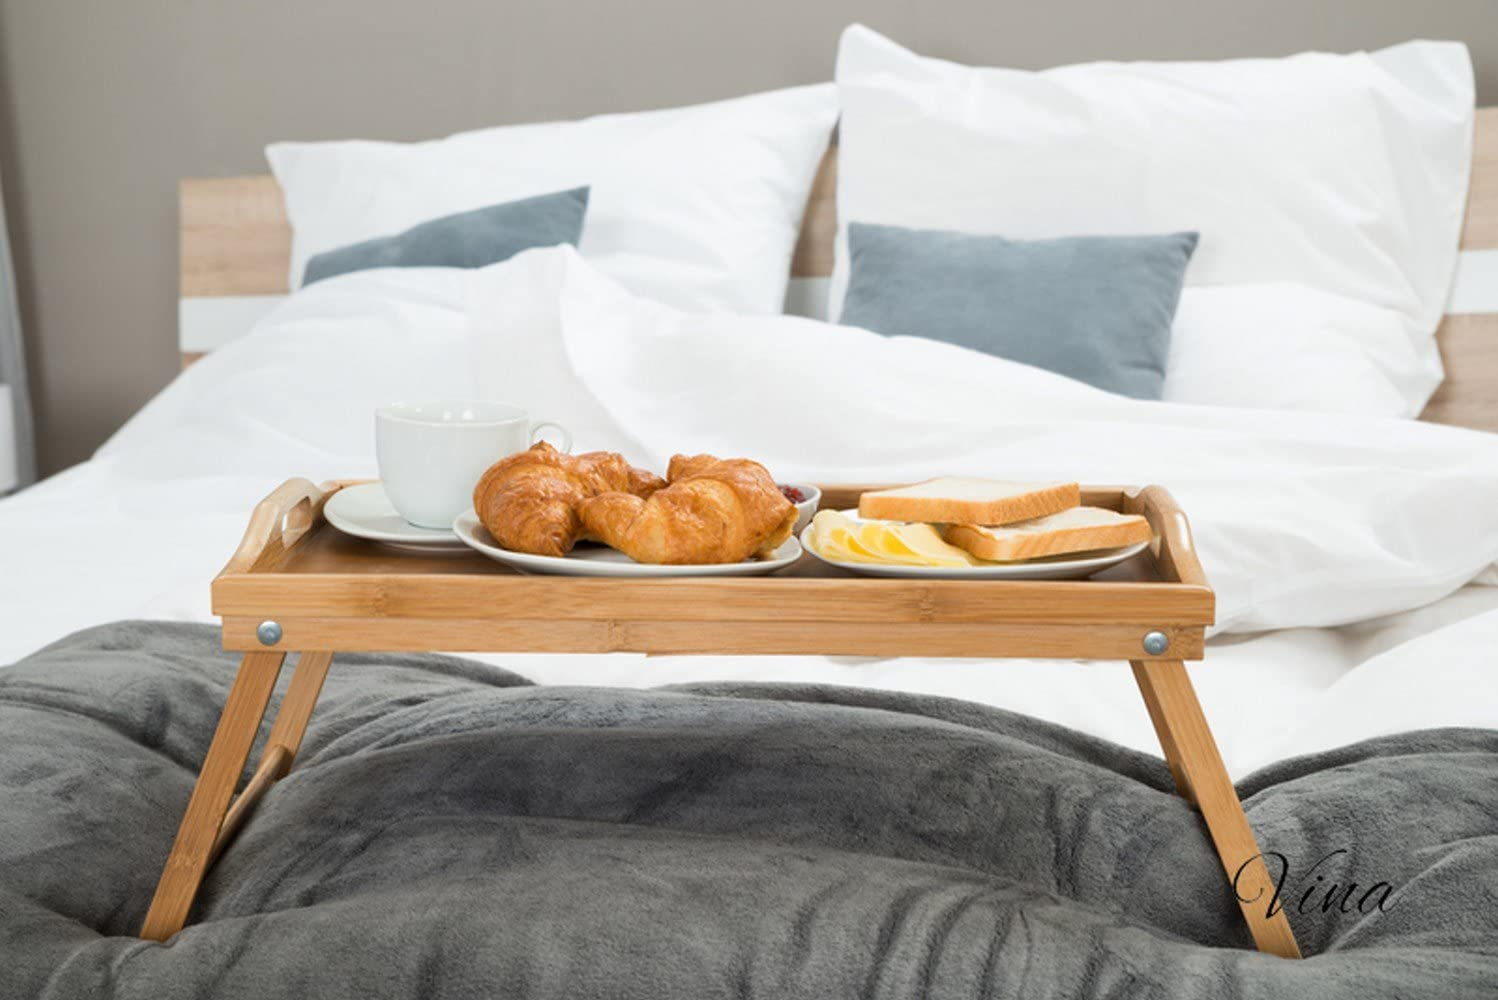 Vina Bamboo Bed Breakfast Tray Table Both and Challenge the lowest price of Japan ☆ Legs Folding with Max 76% OFF